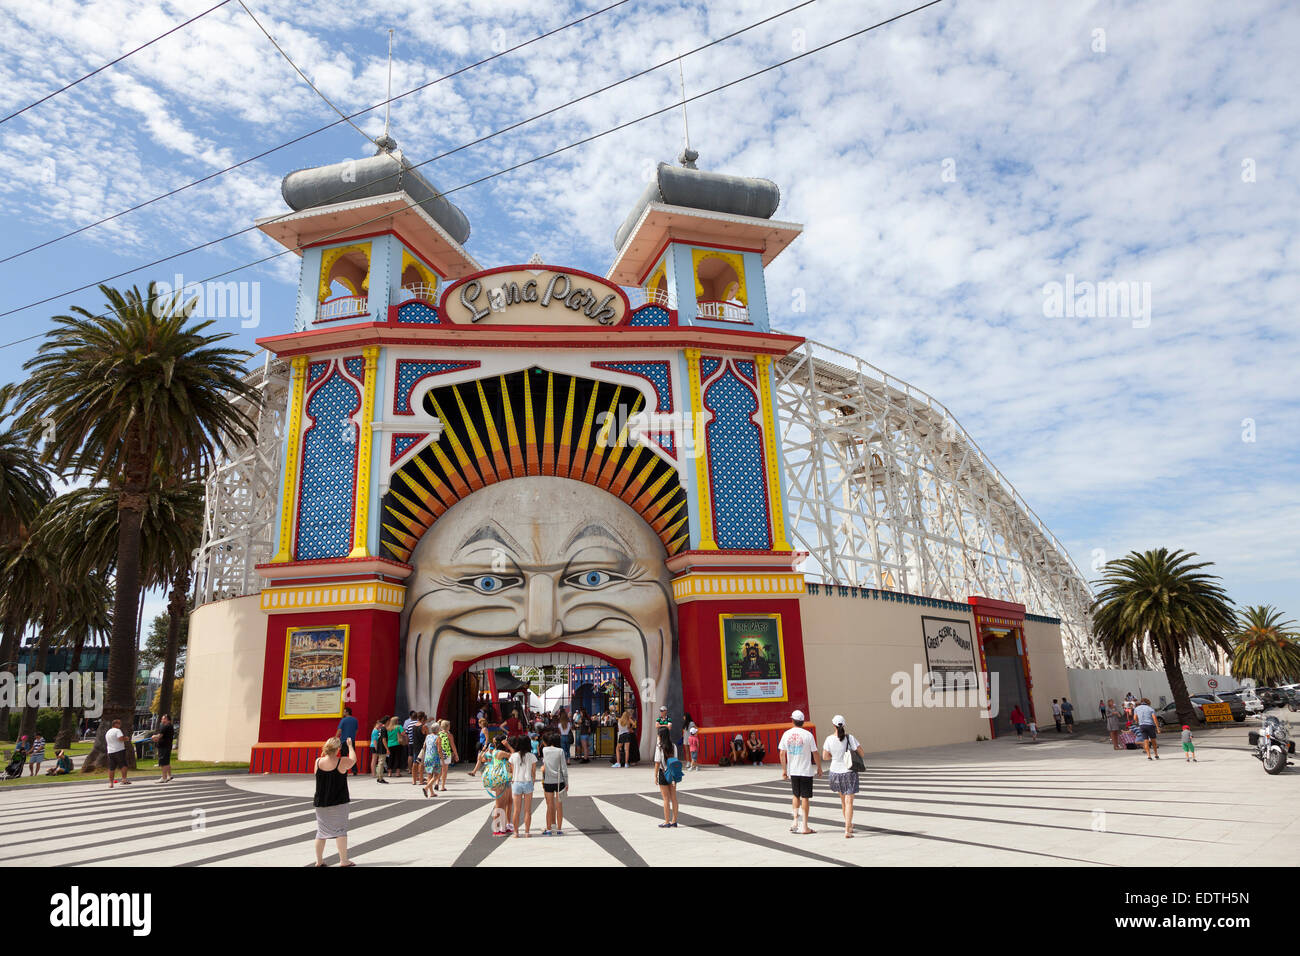 Entrance Gate to Luna Park St Kilda Melbourne, Australia - Stock Image